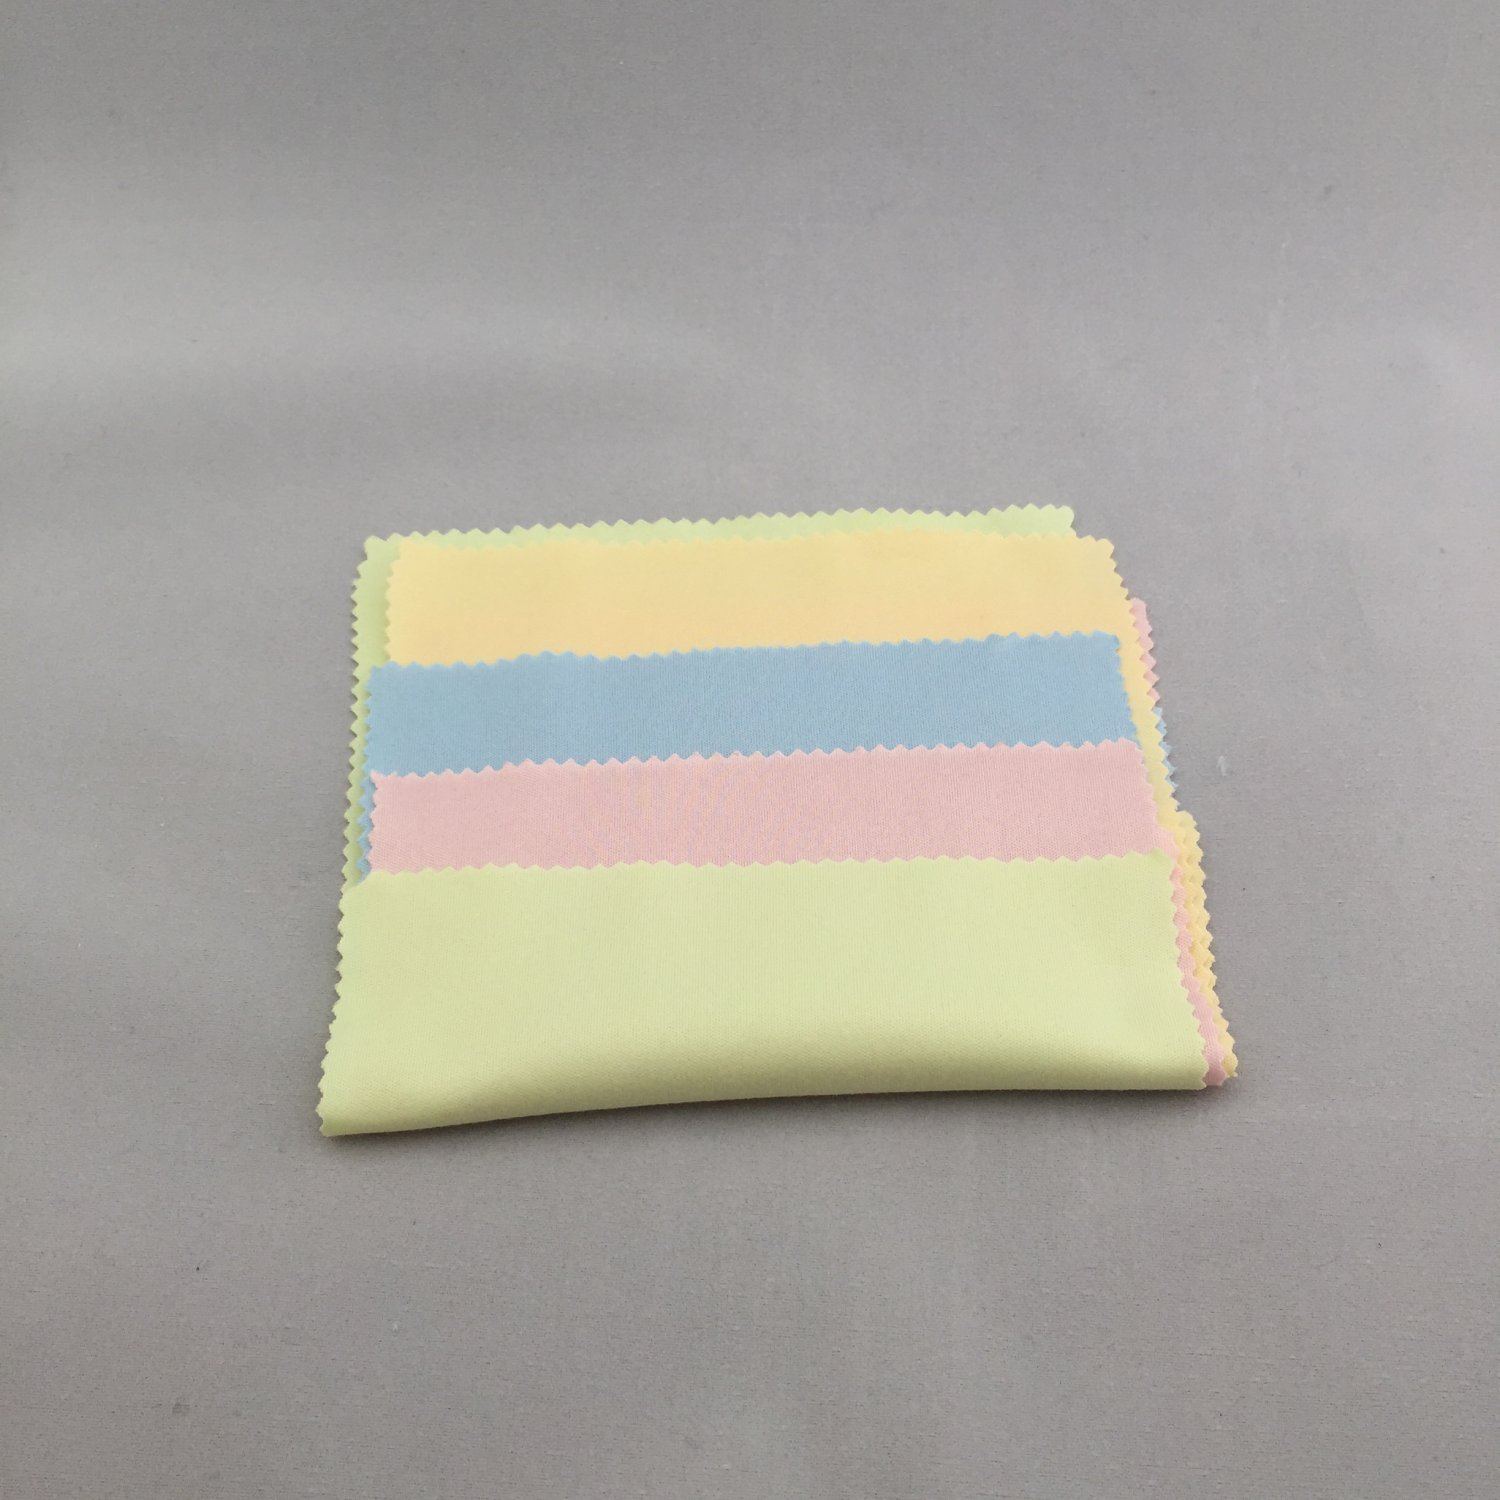 30x Microfibre Cleaning Cloths for Glasses